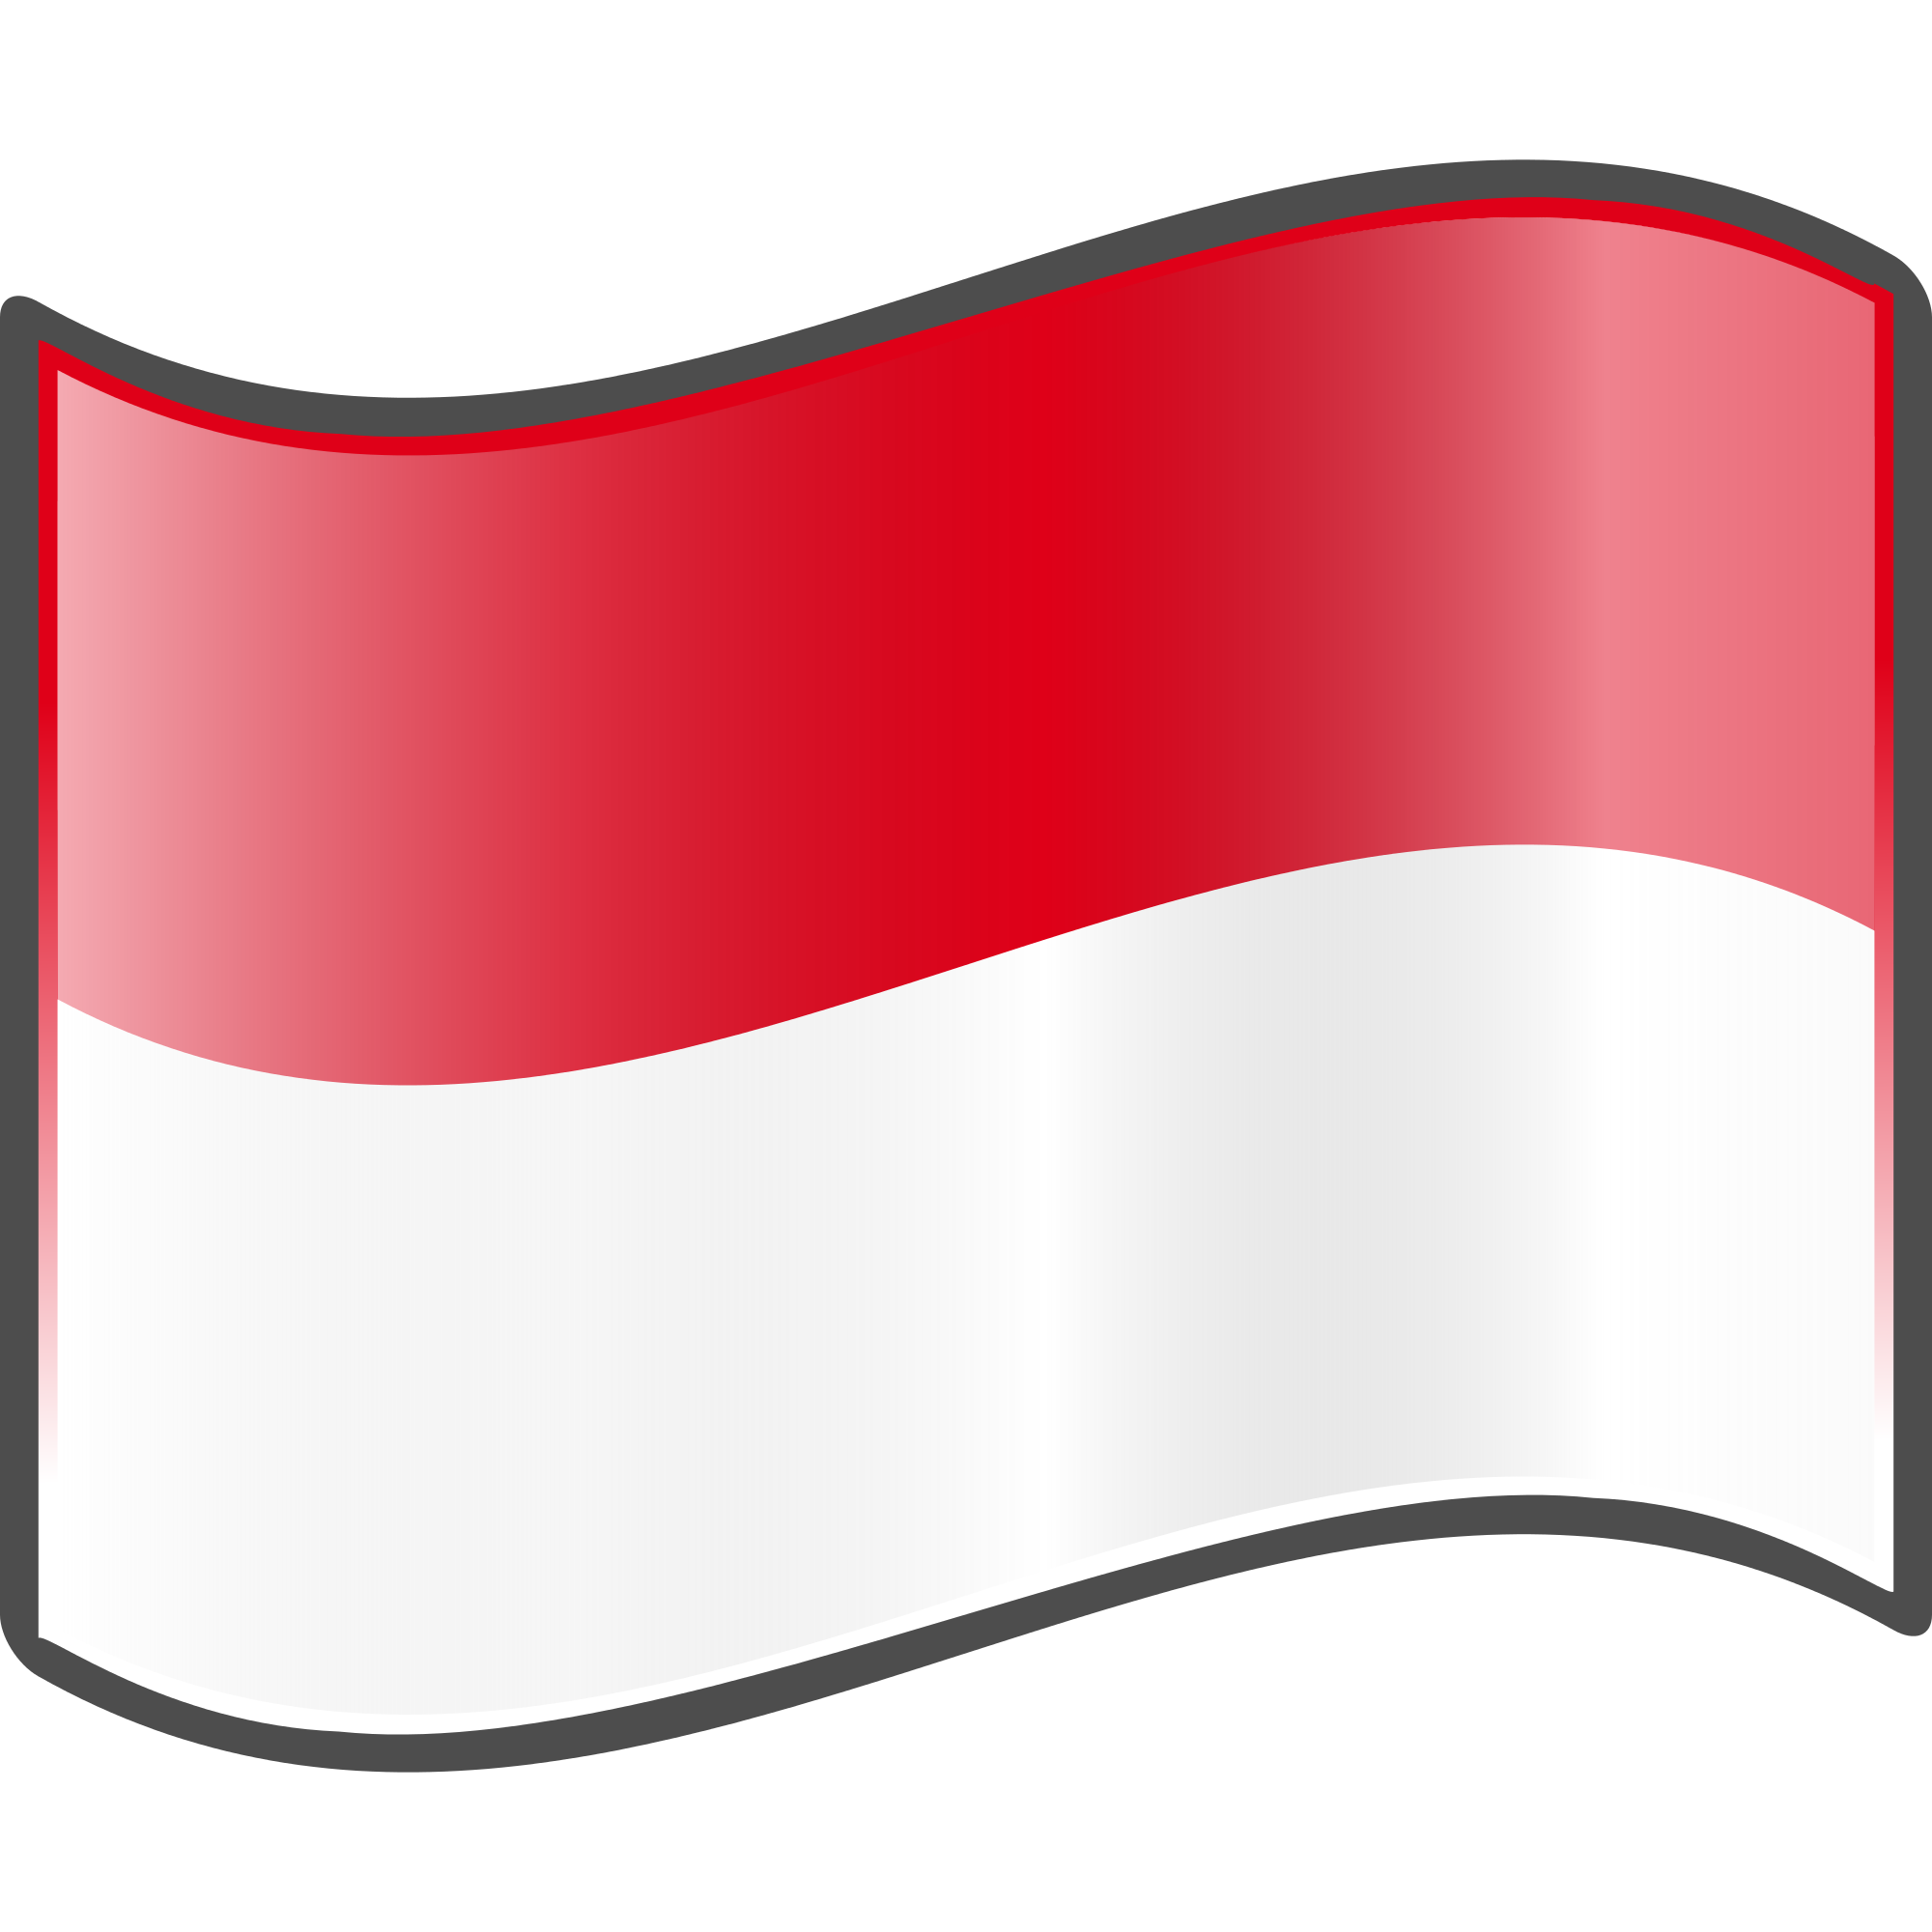 Indonesia flag clipart picture free File:Nuvola Indonesian flag.svg - Wikimedia Commons picture free